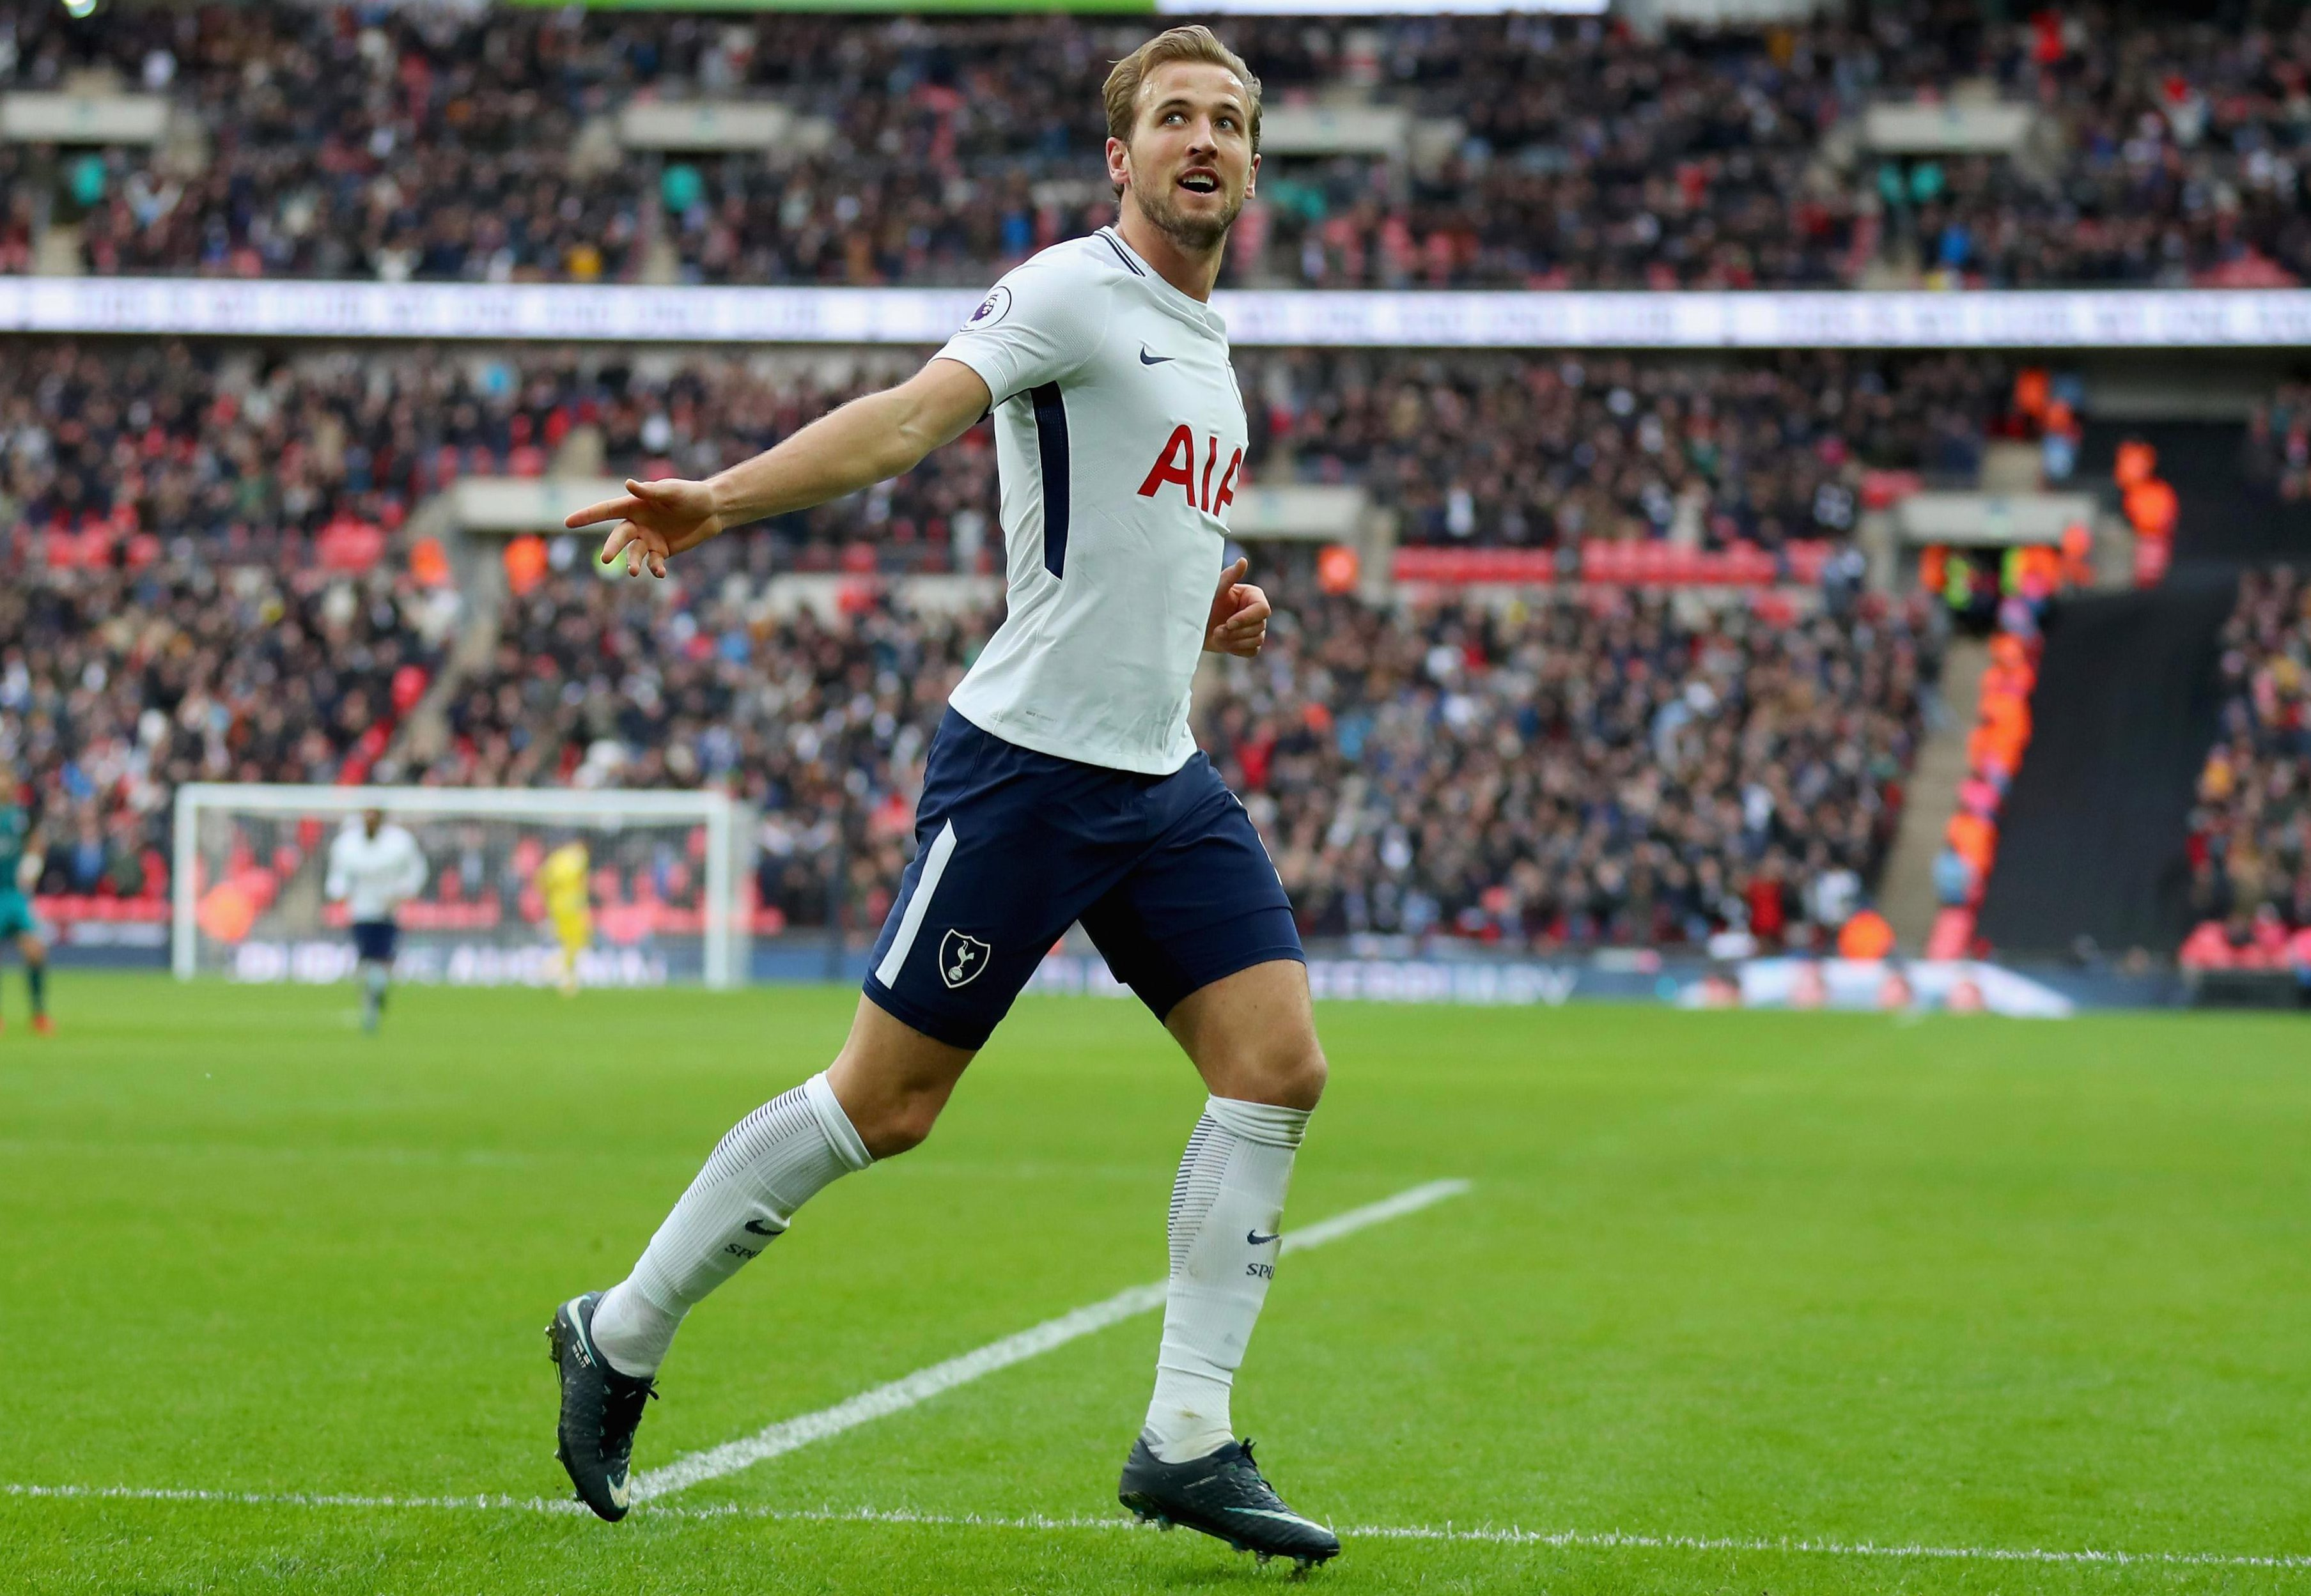 Unsurprisingly Harry Kane is capable of scoring a hat-trick when playing against holograms